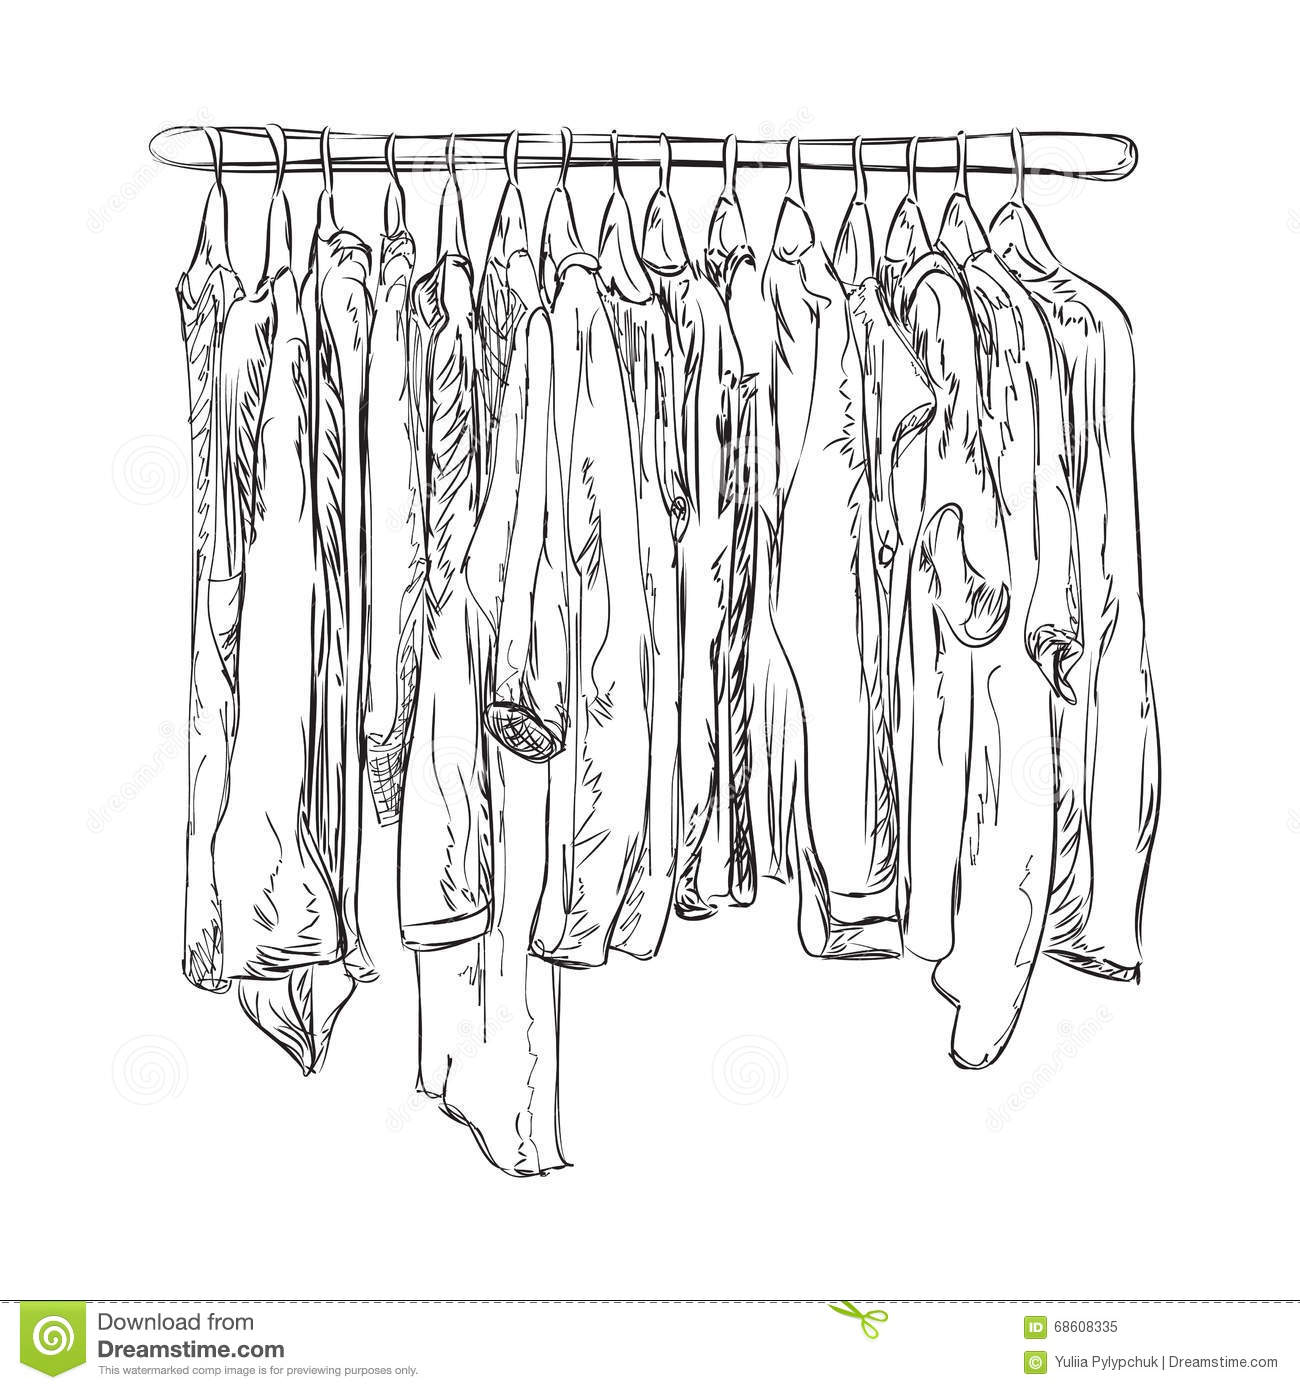 Wardrobe clipart black and white  Wardrobe Sketch Clothes Shop Stock Illustrations – 179 Wardrobe ...